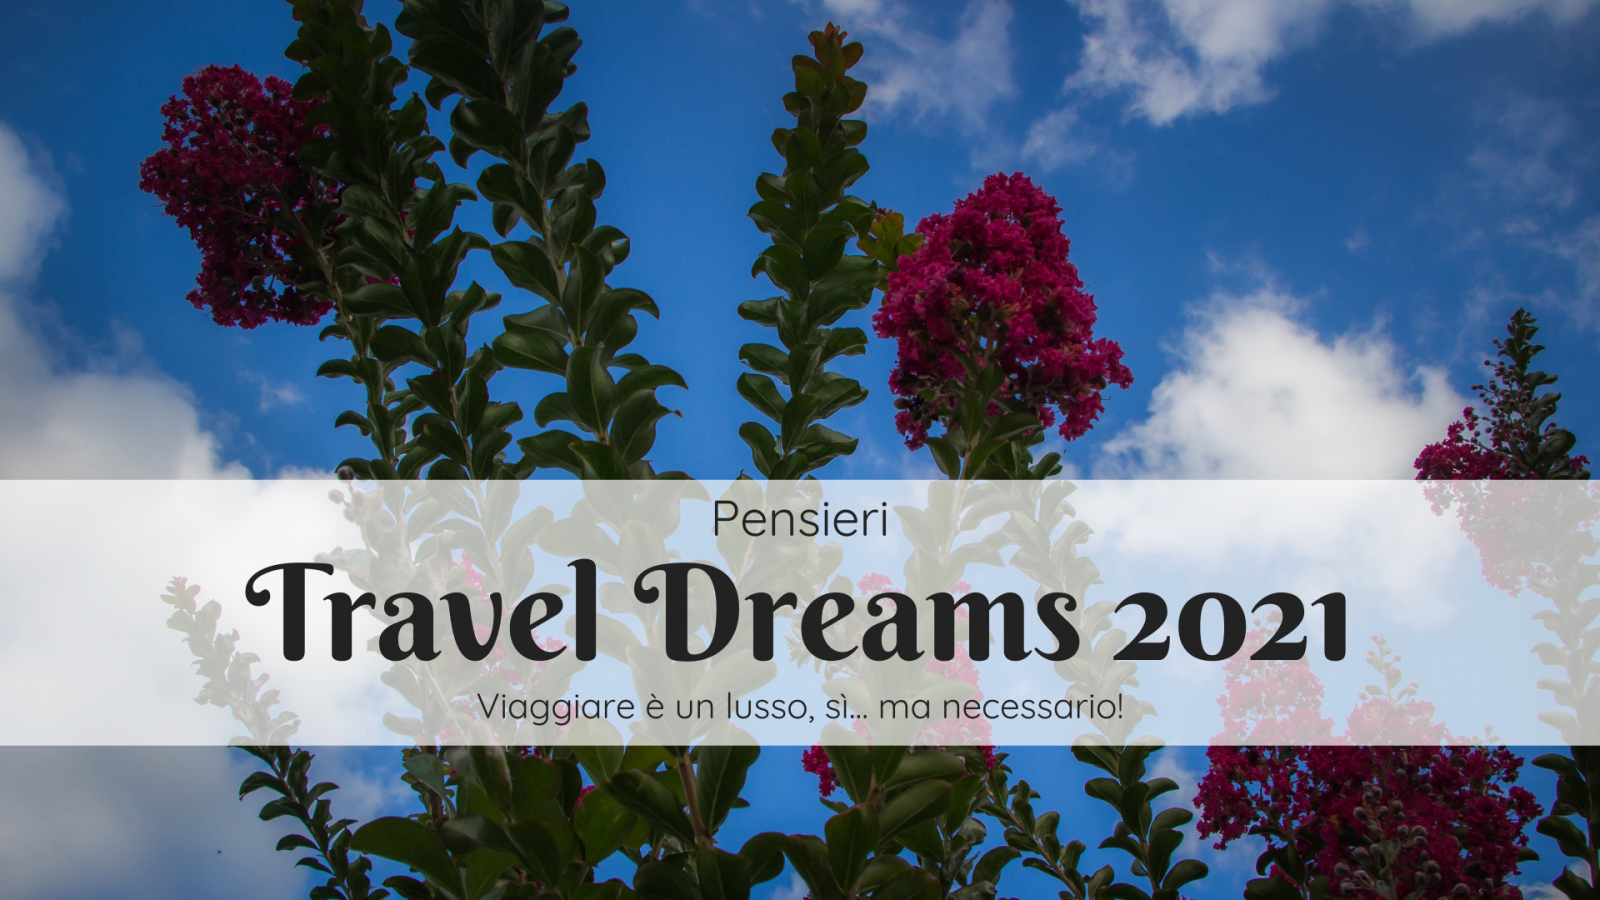 Travel Dreams 2021